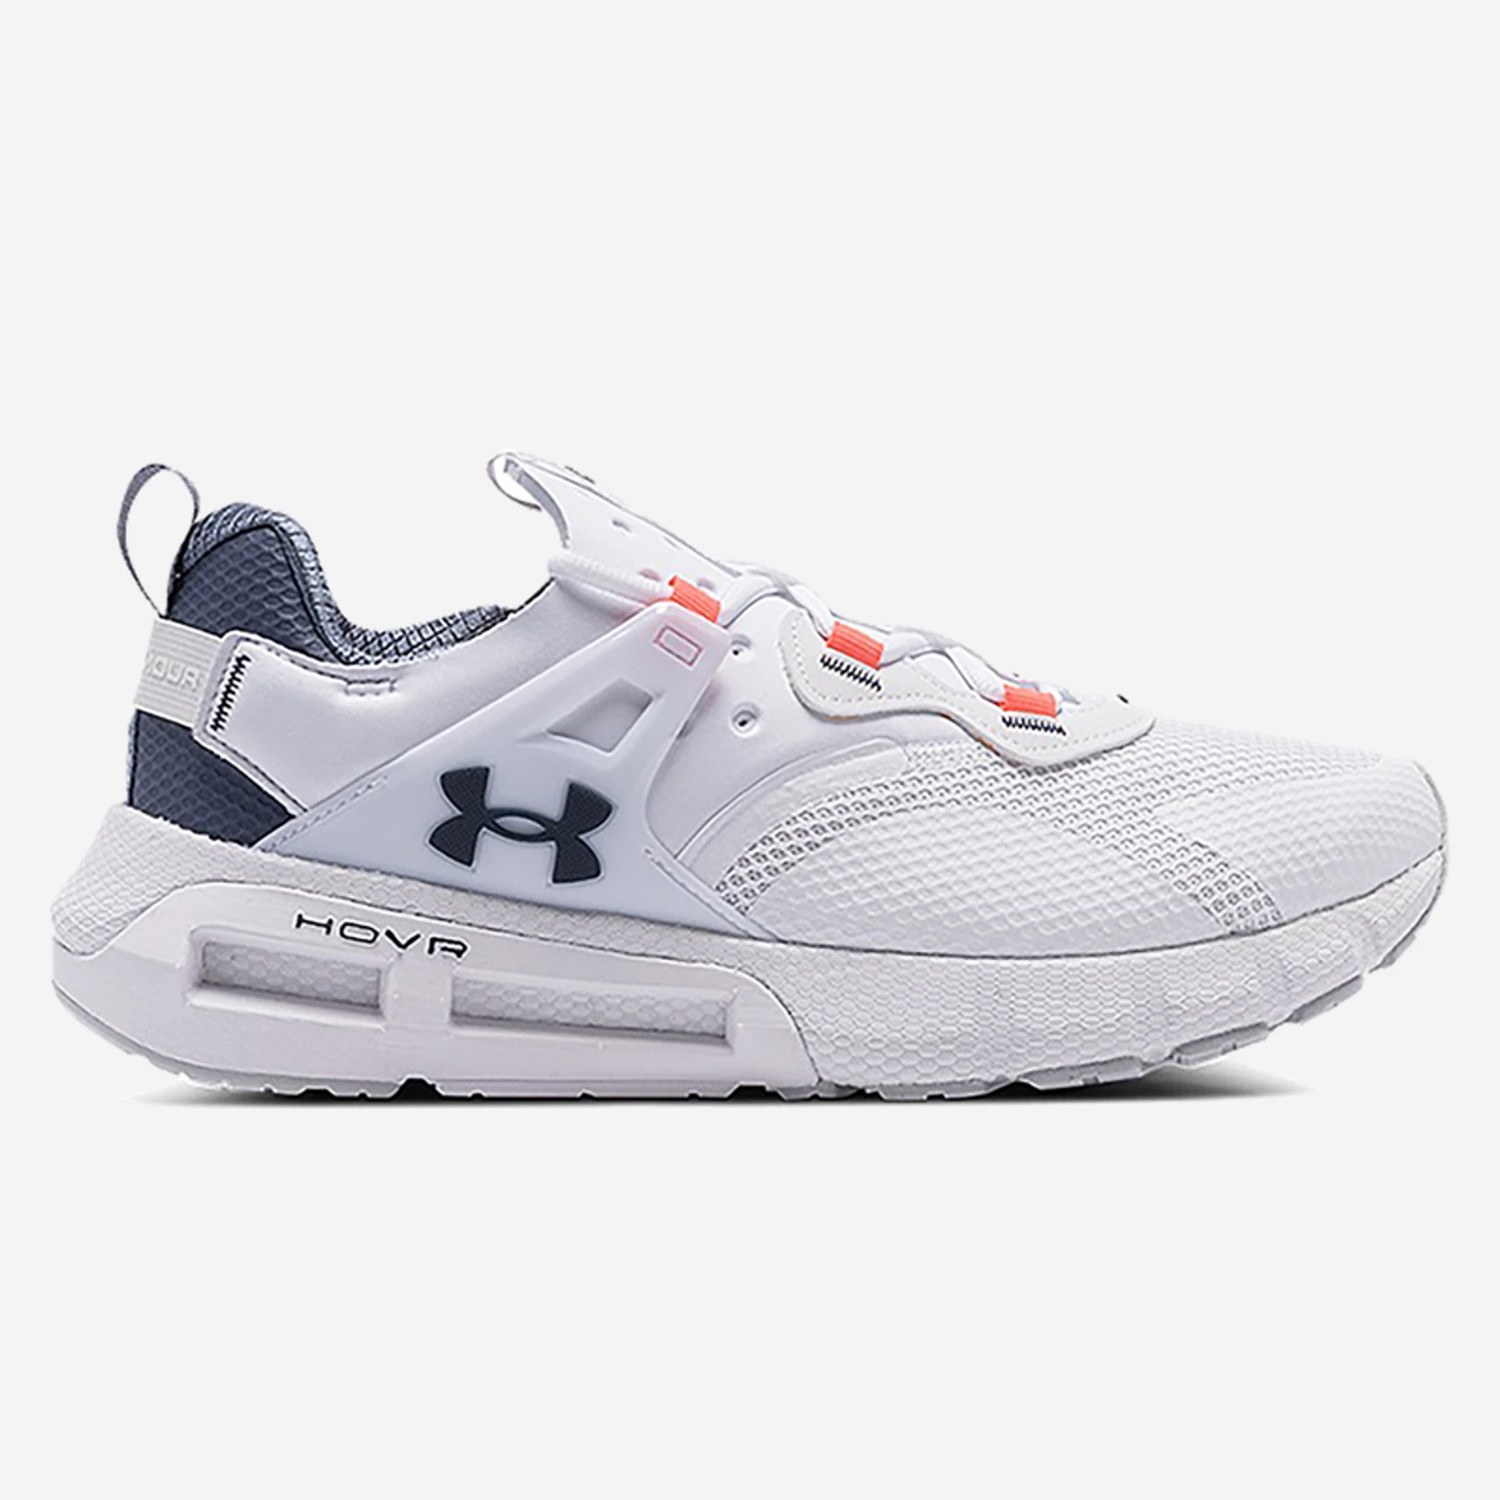 Under Armour Hovr Mega Mvmnt (9000070925_50756)